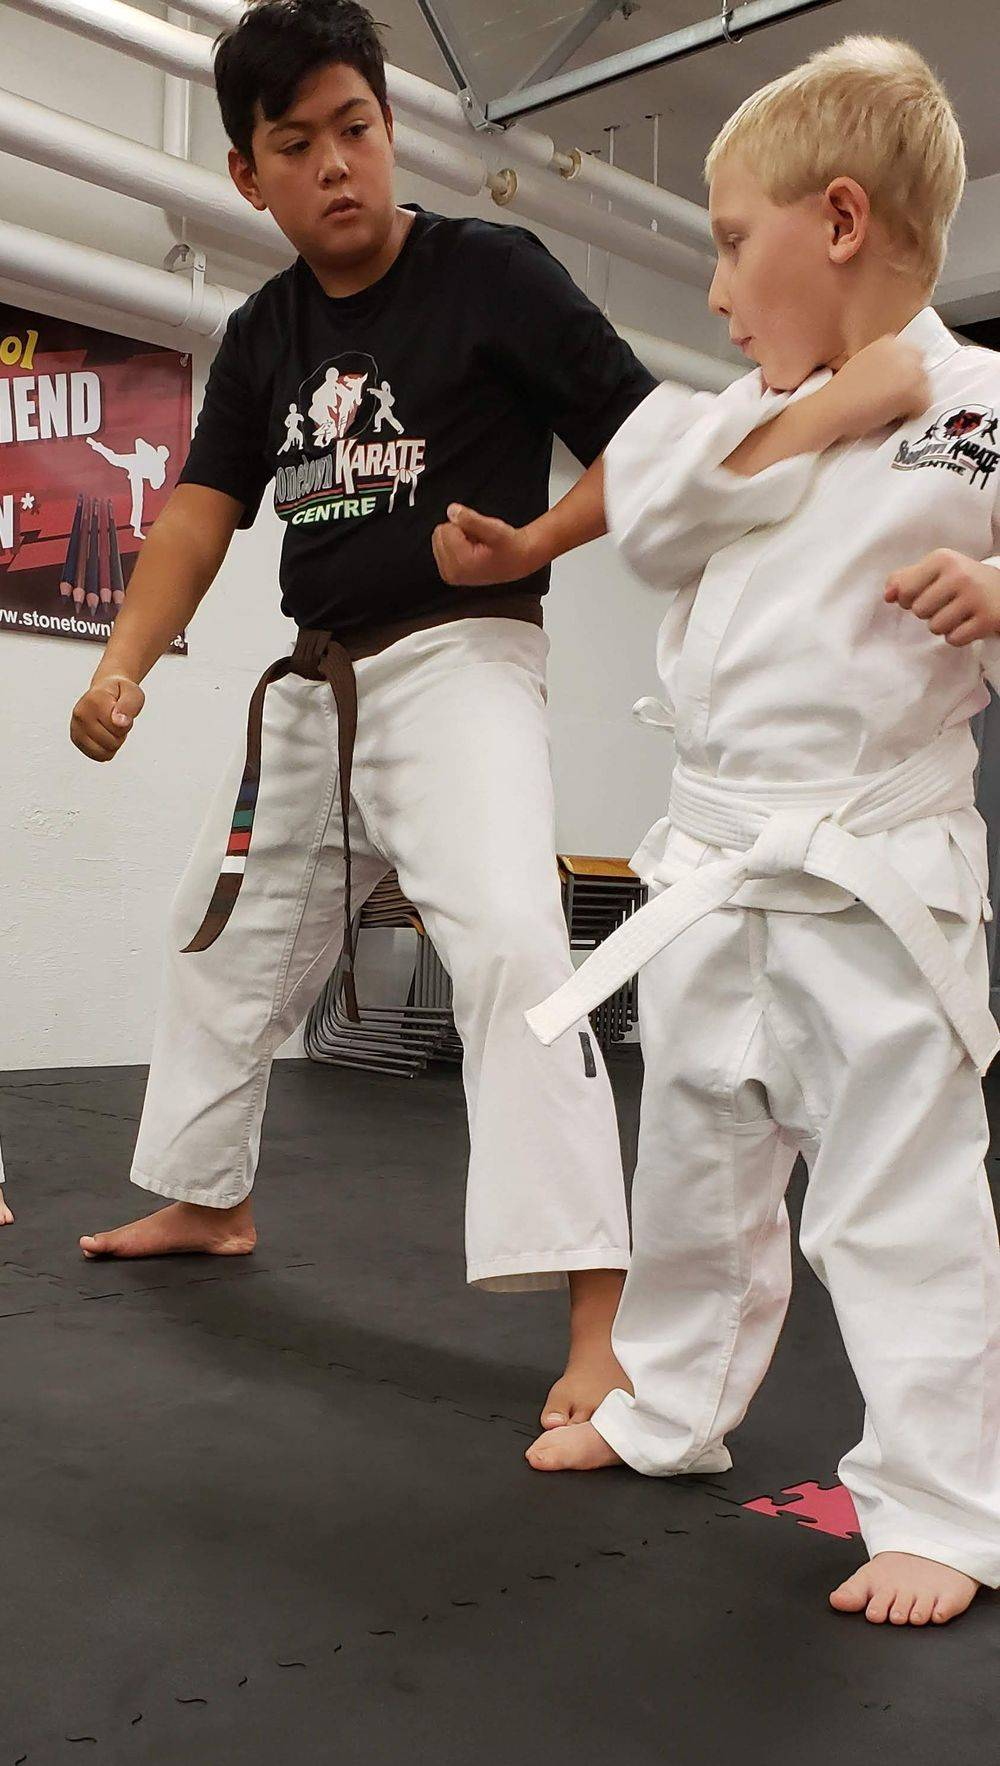 Karate brings focus and structure to children